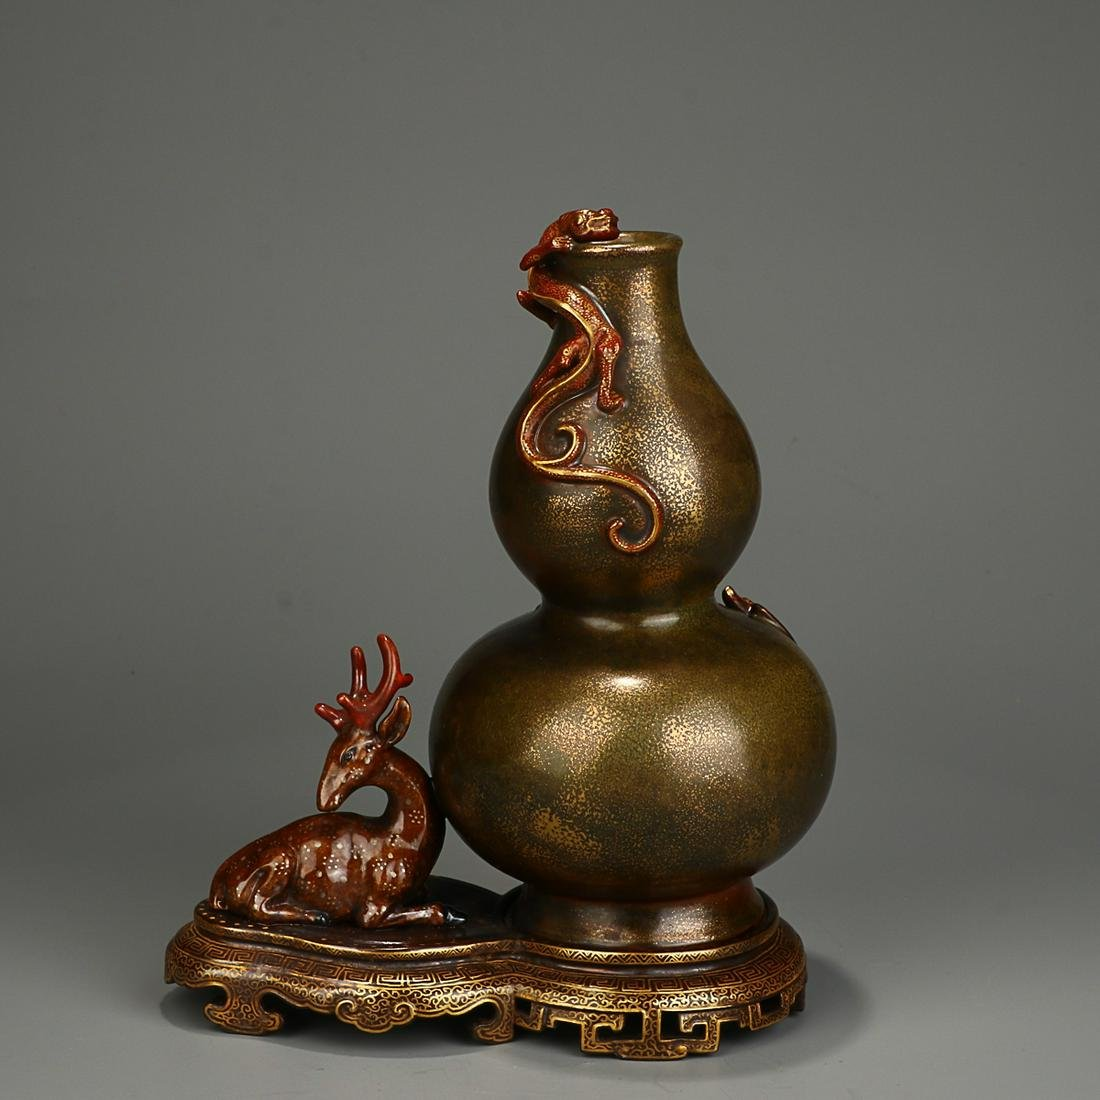 GOLD-SPLASHED TEA-DUST GLAZED 'FULU' DOUBLE-GOURD VASE